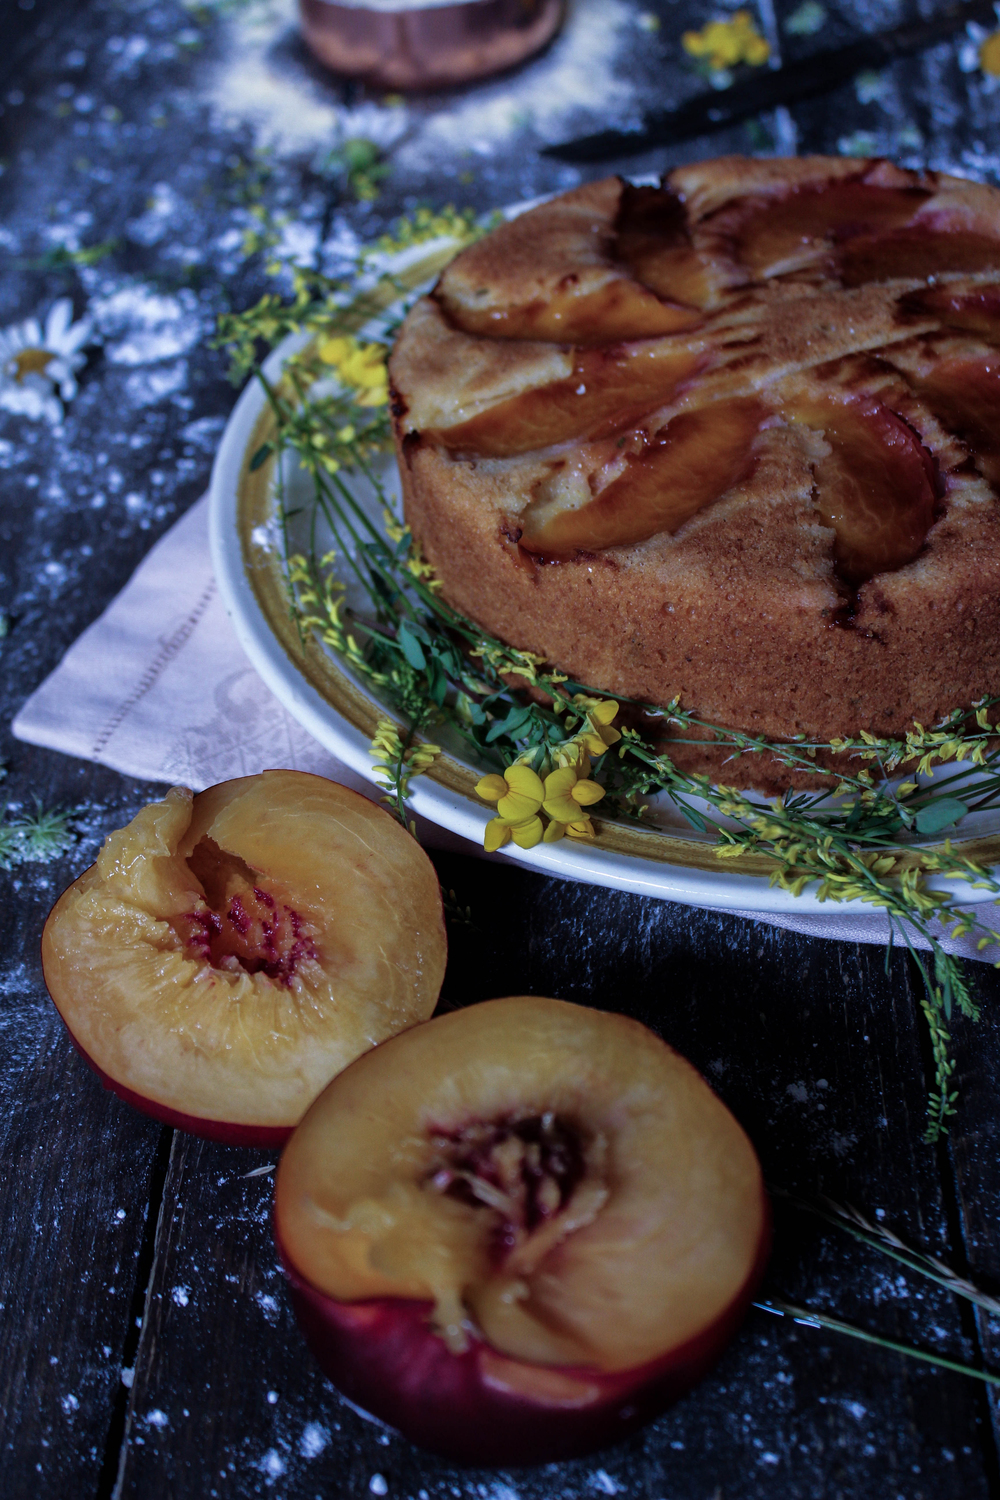 Peach and Cornmeal Cake